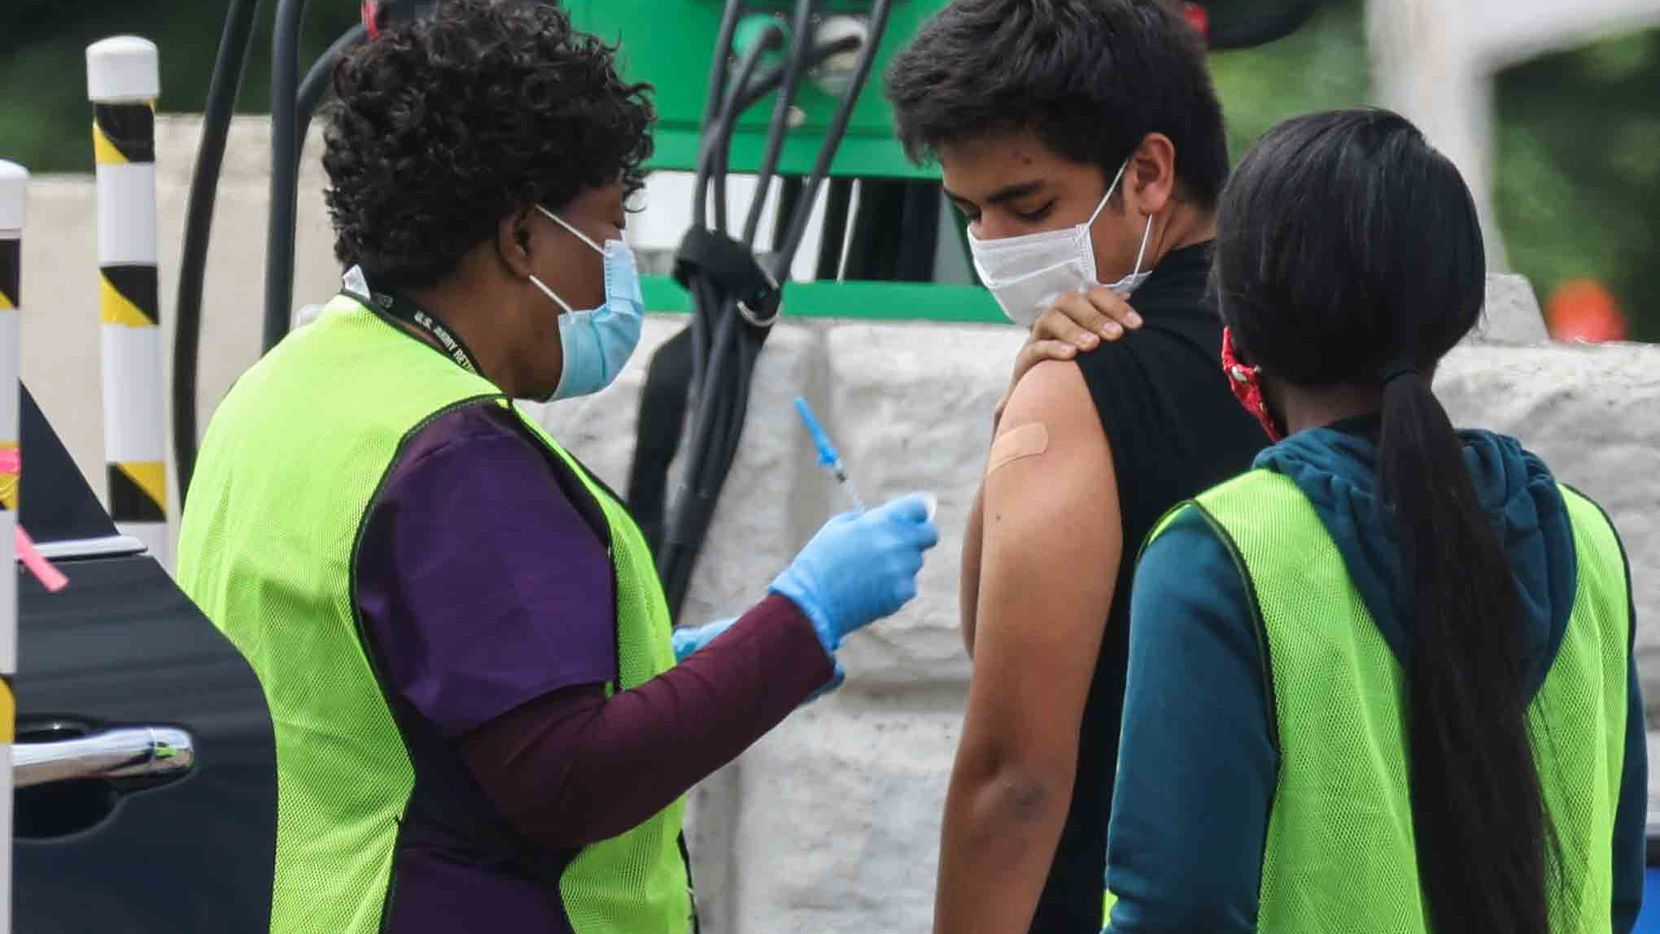 A nurse gives a COVID-19 vaccine to a man at Fair Park in Dallas on May 14.